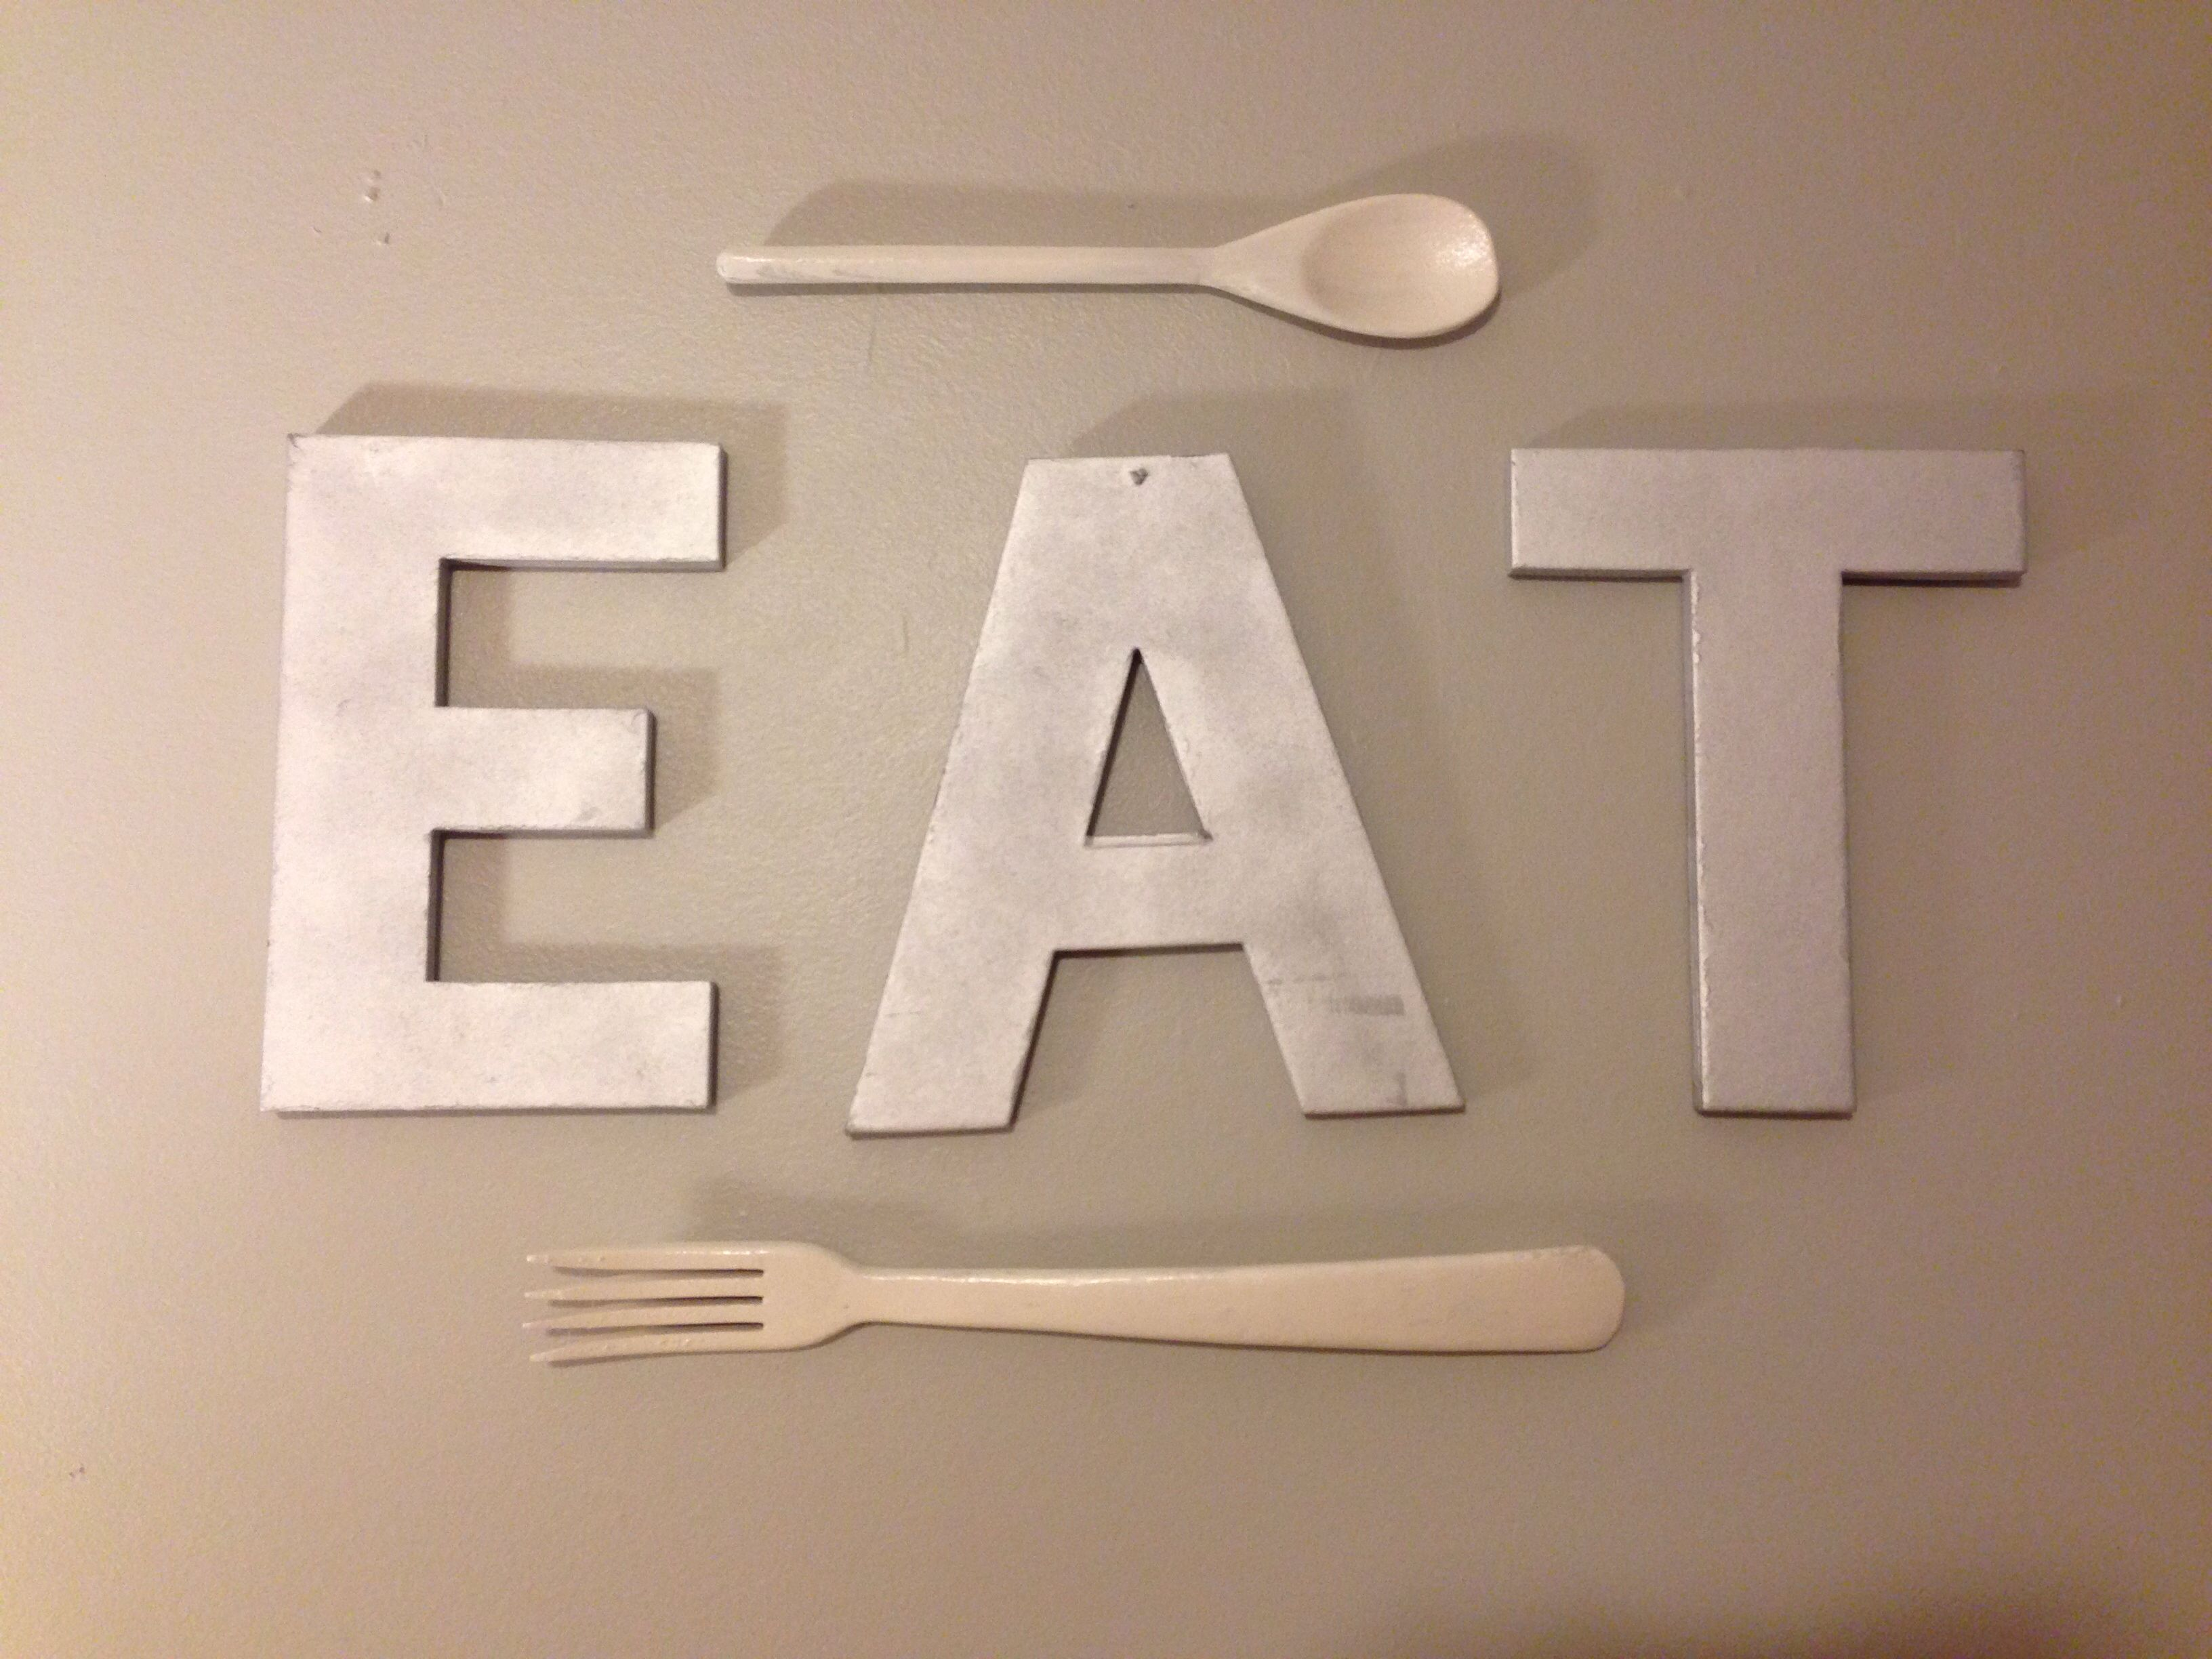 Karton Buchstaben Cardboard Letters Spray Painted And Painted Fork And Spoon